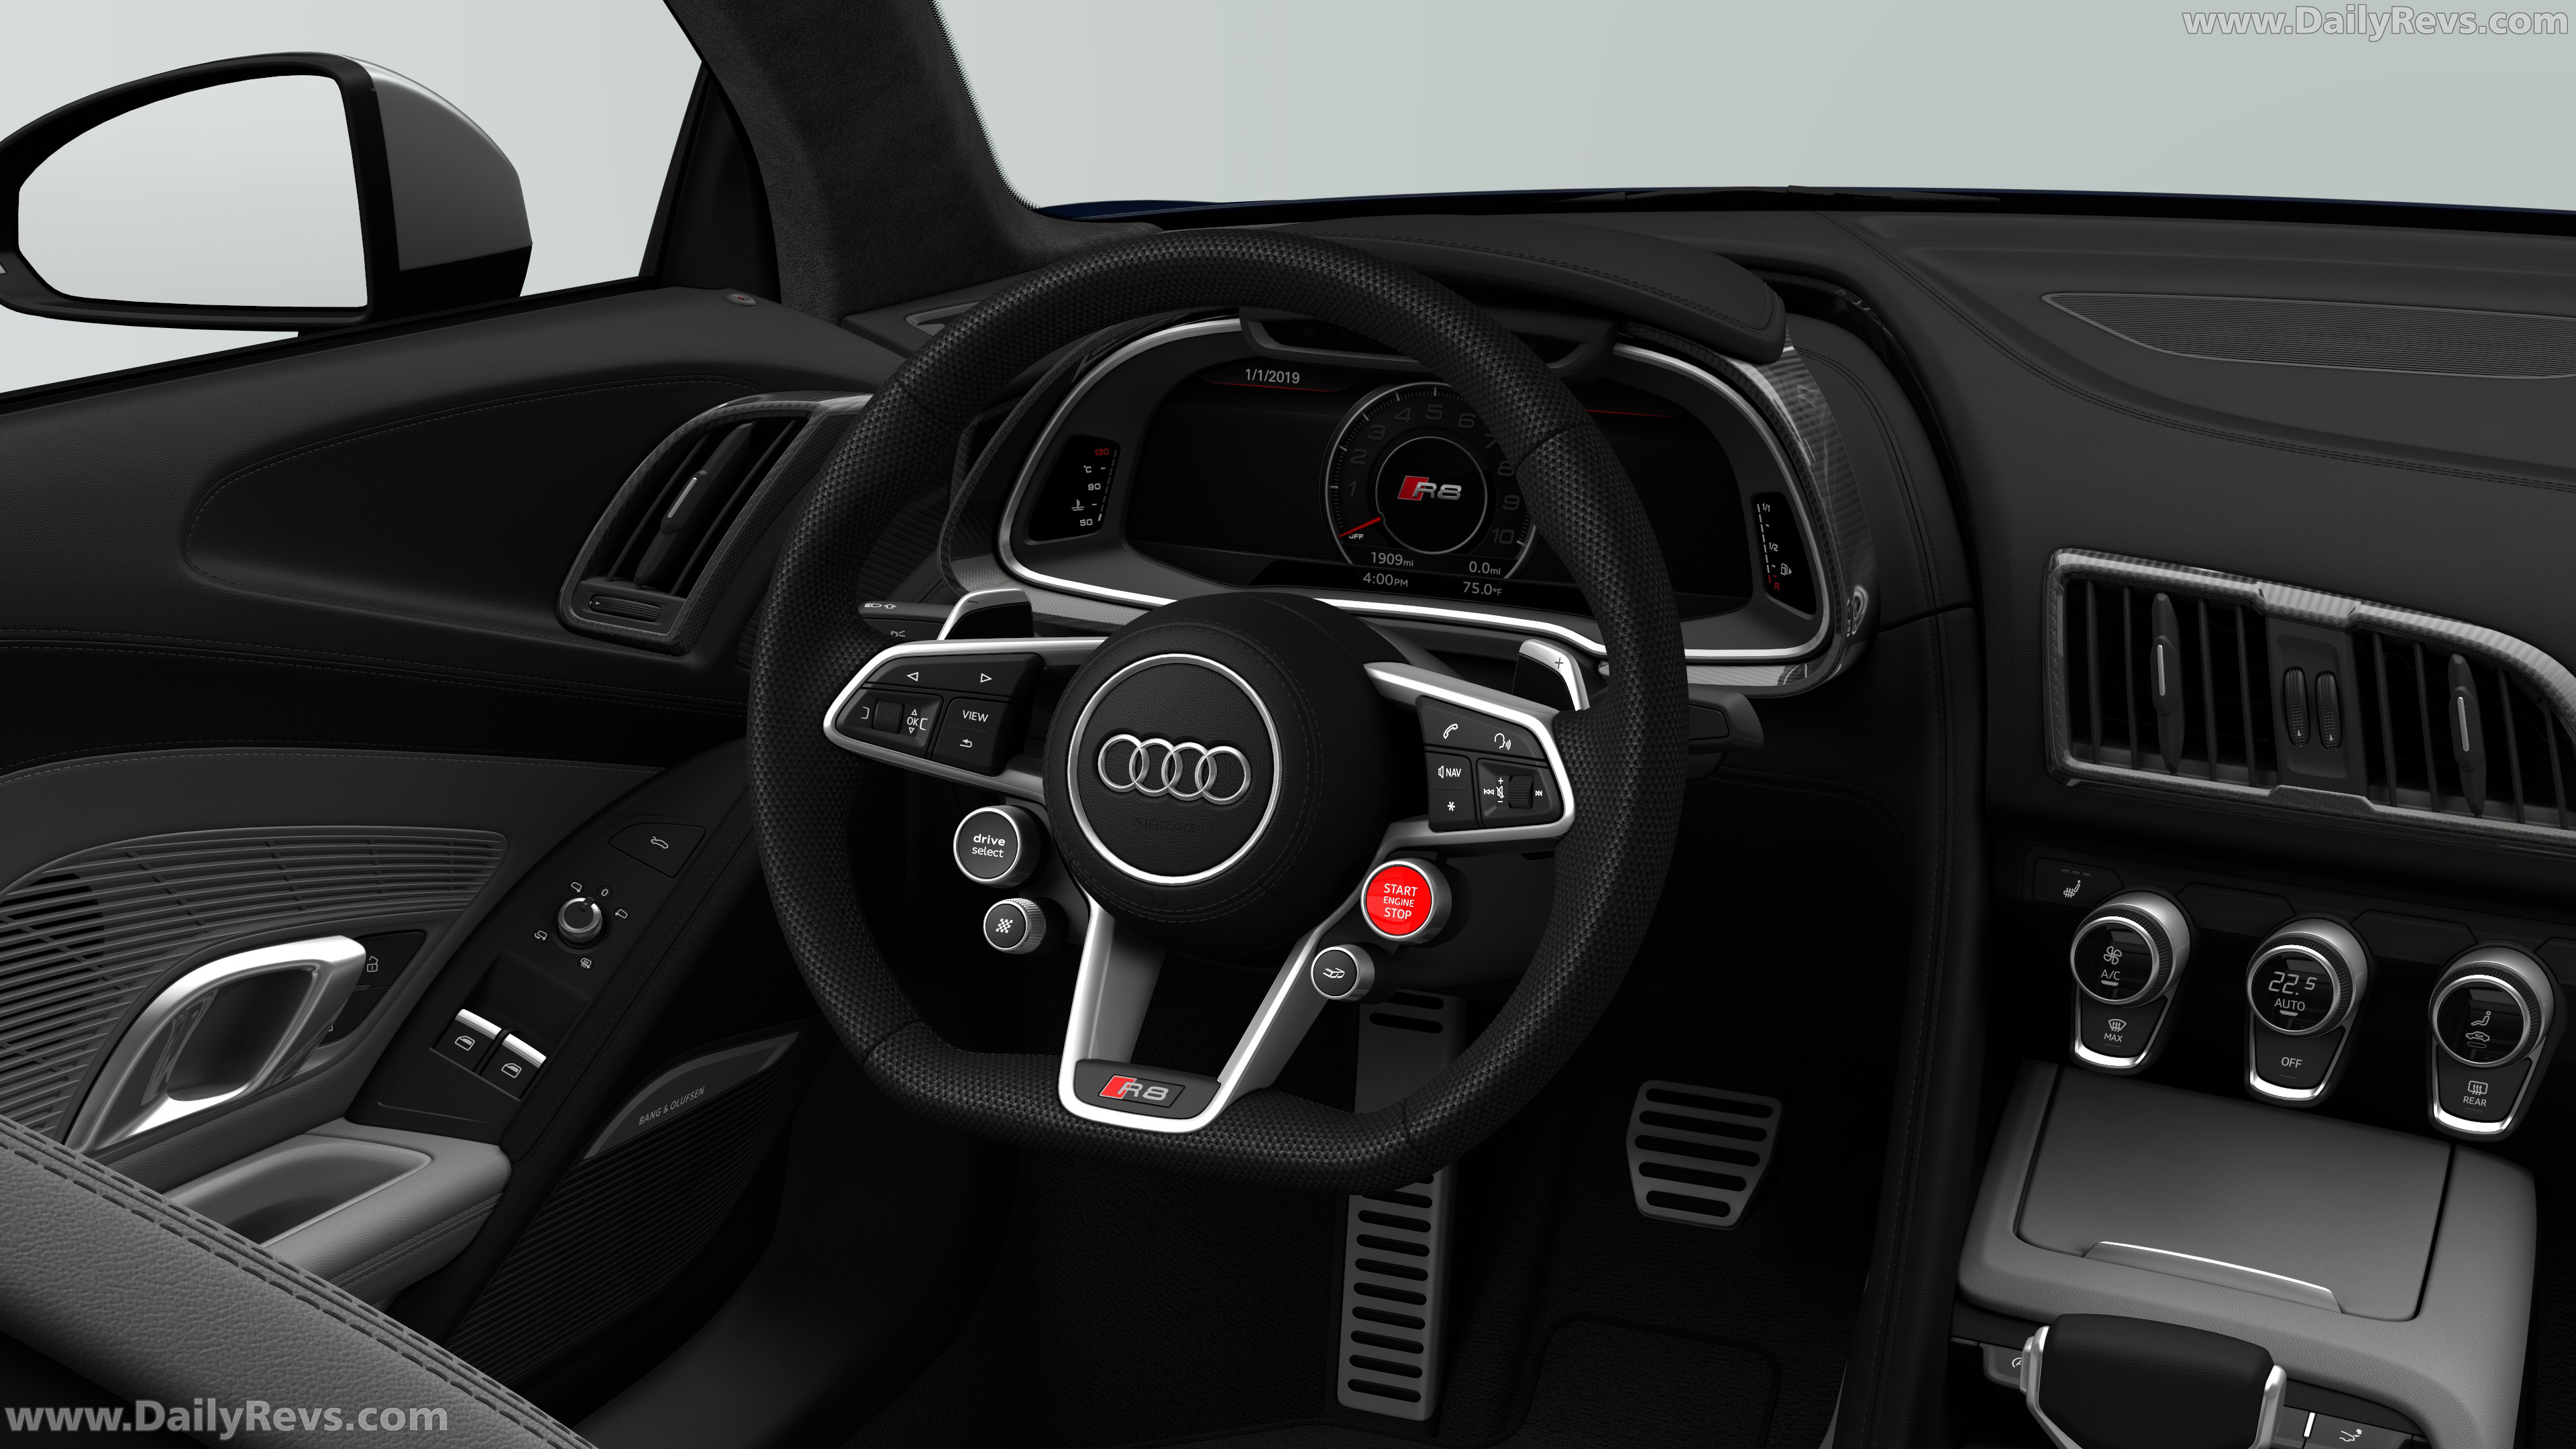 2020 audi r8 v10 limited edition  dailyrevs